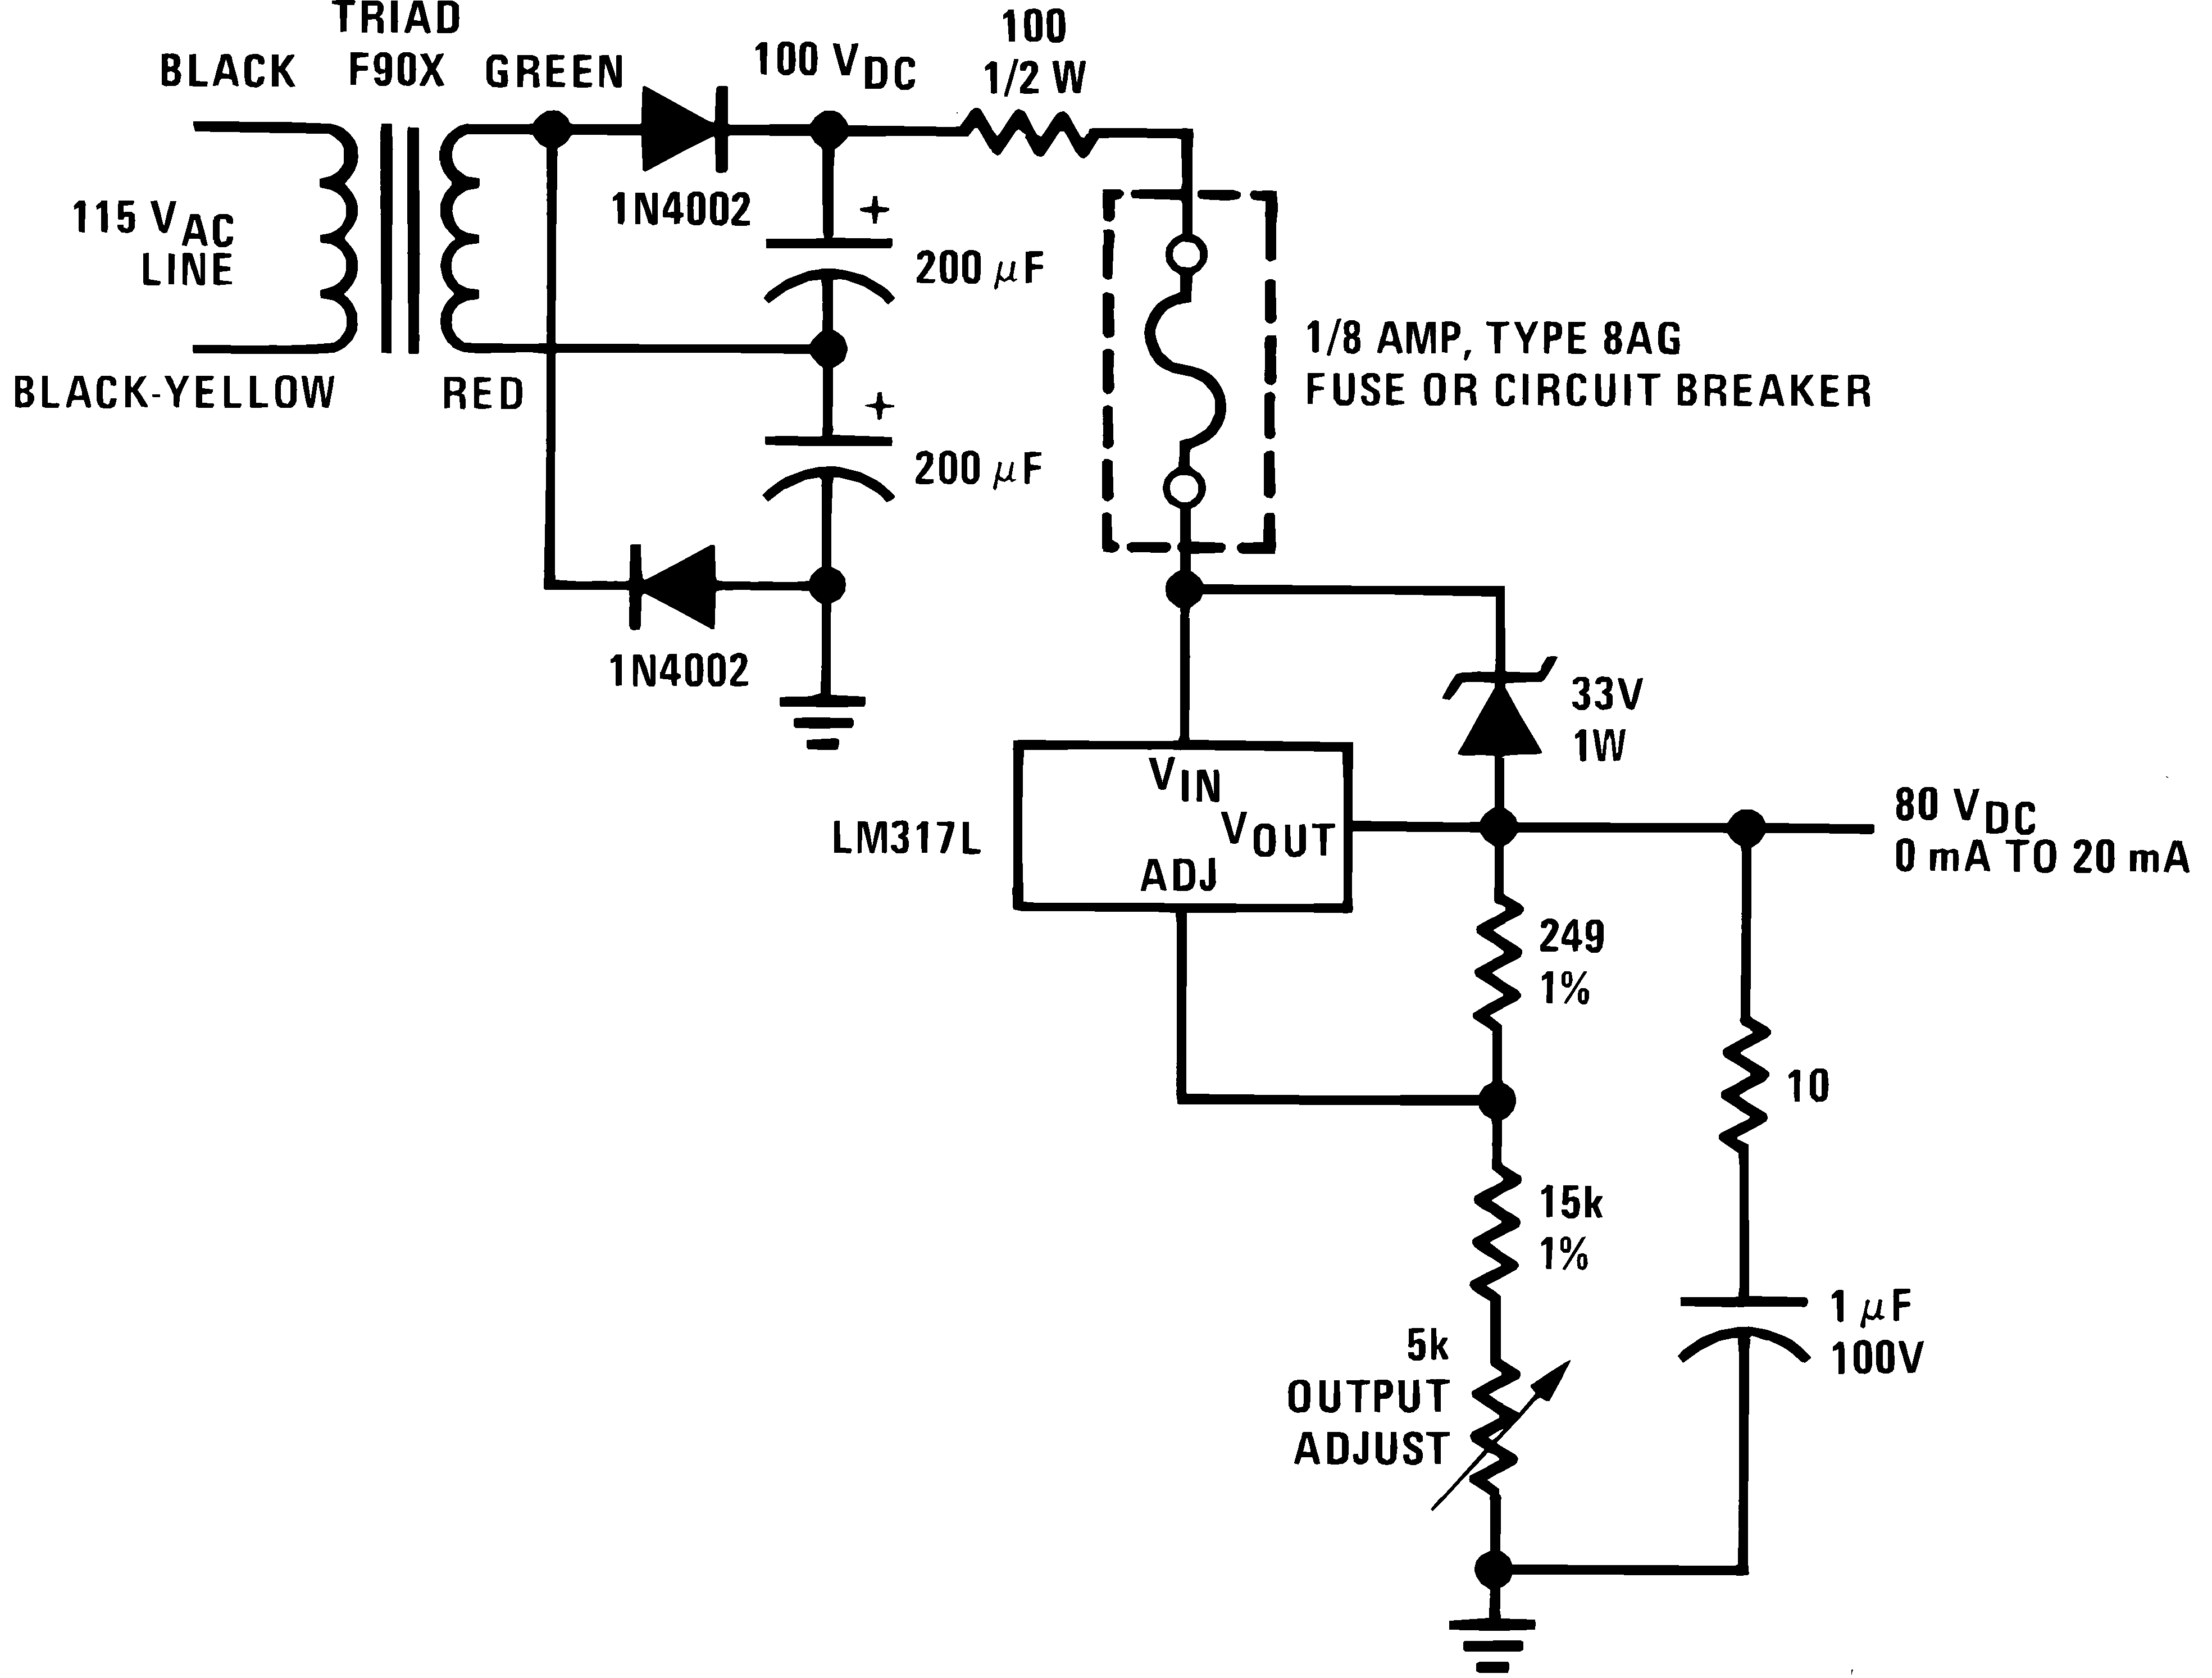 Lm317l N Lamp Flasher Using Lm317 906428